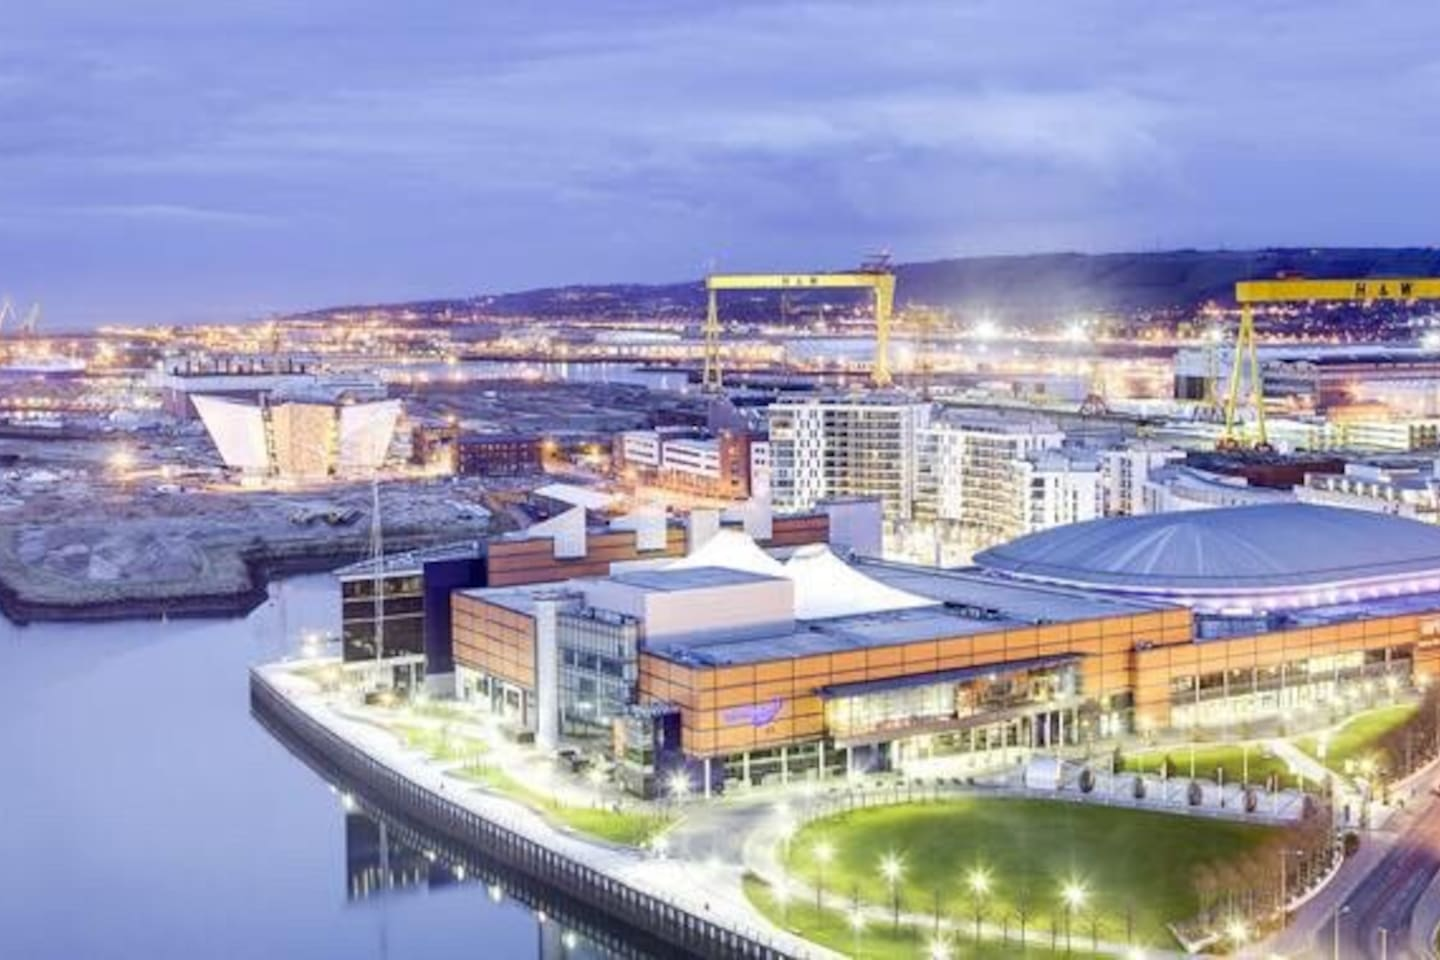 Within 5-10 mins in a taxi from popular tourist attraction Titanic Museum in Titanic Quarter, Belfast.